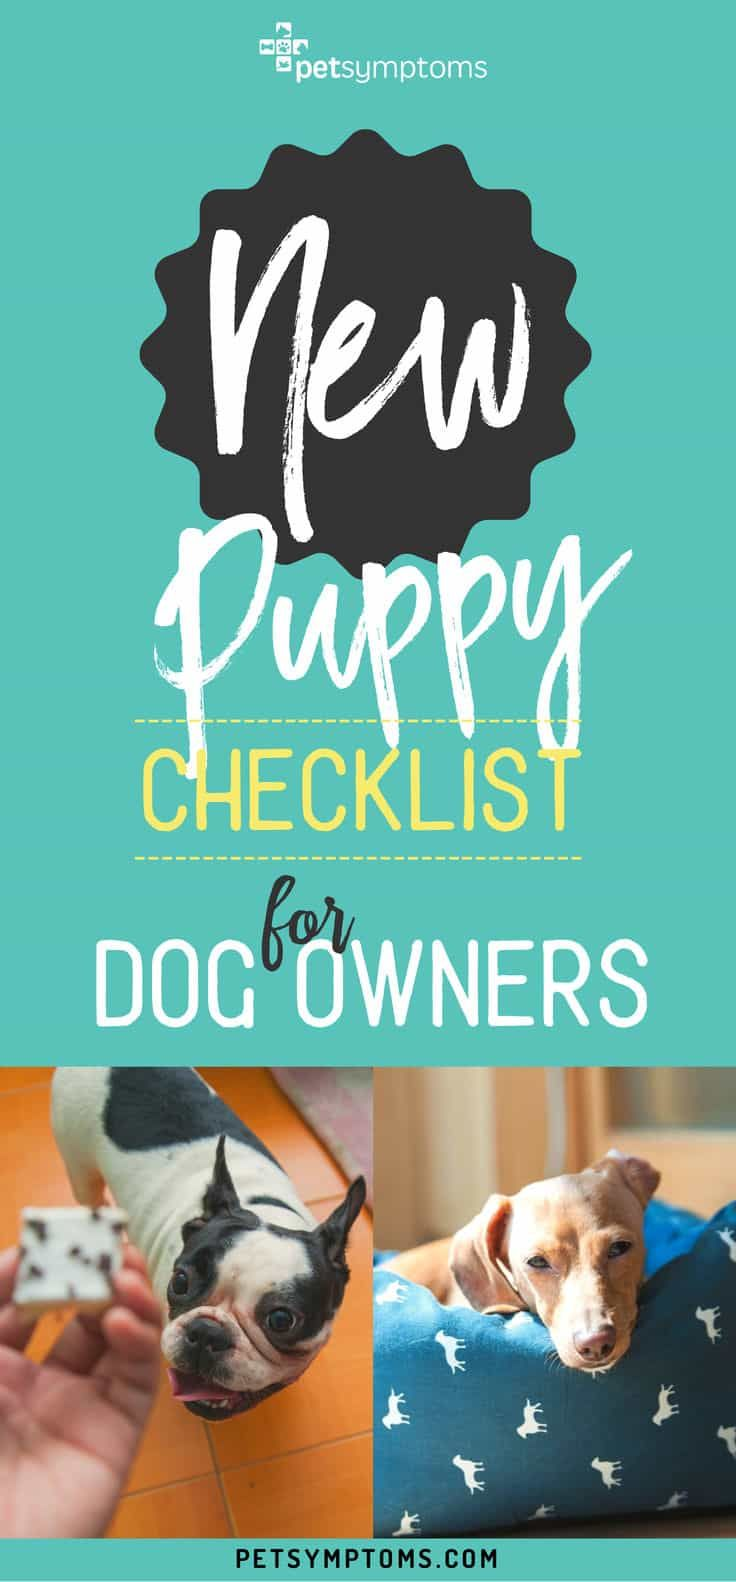 Vaccines help keep puppies disease-free. Going to dog parks and interacting with other animals would be risky for new puppies that have not been immunized yet. Befriend your local veterinarian and keep track of the all the vaccination needs for your pooch.